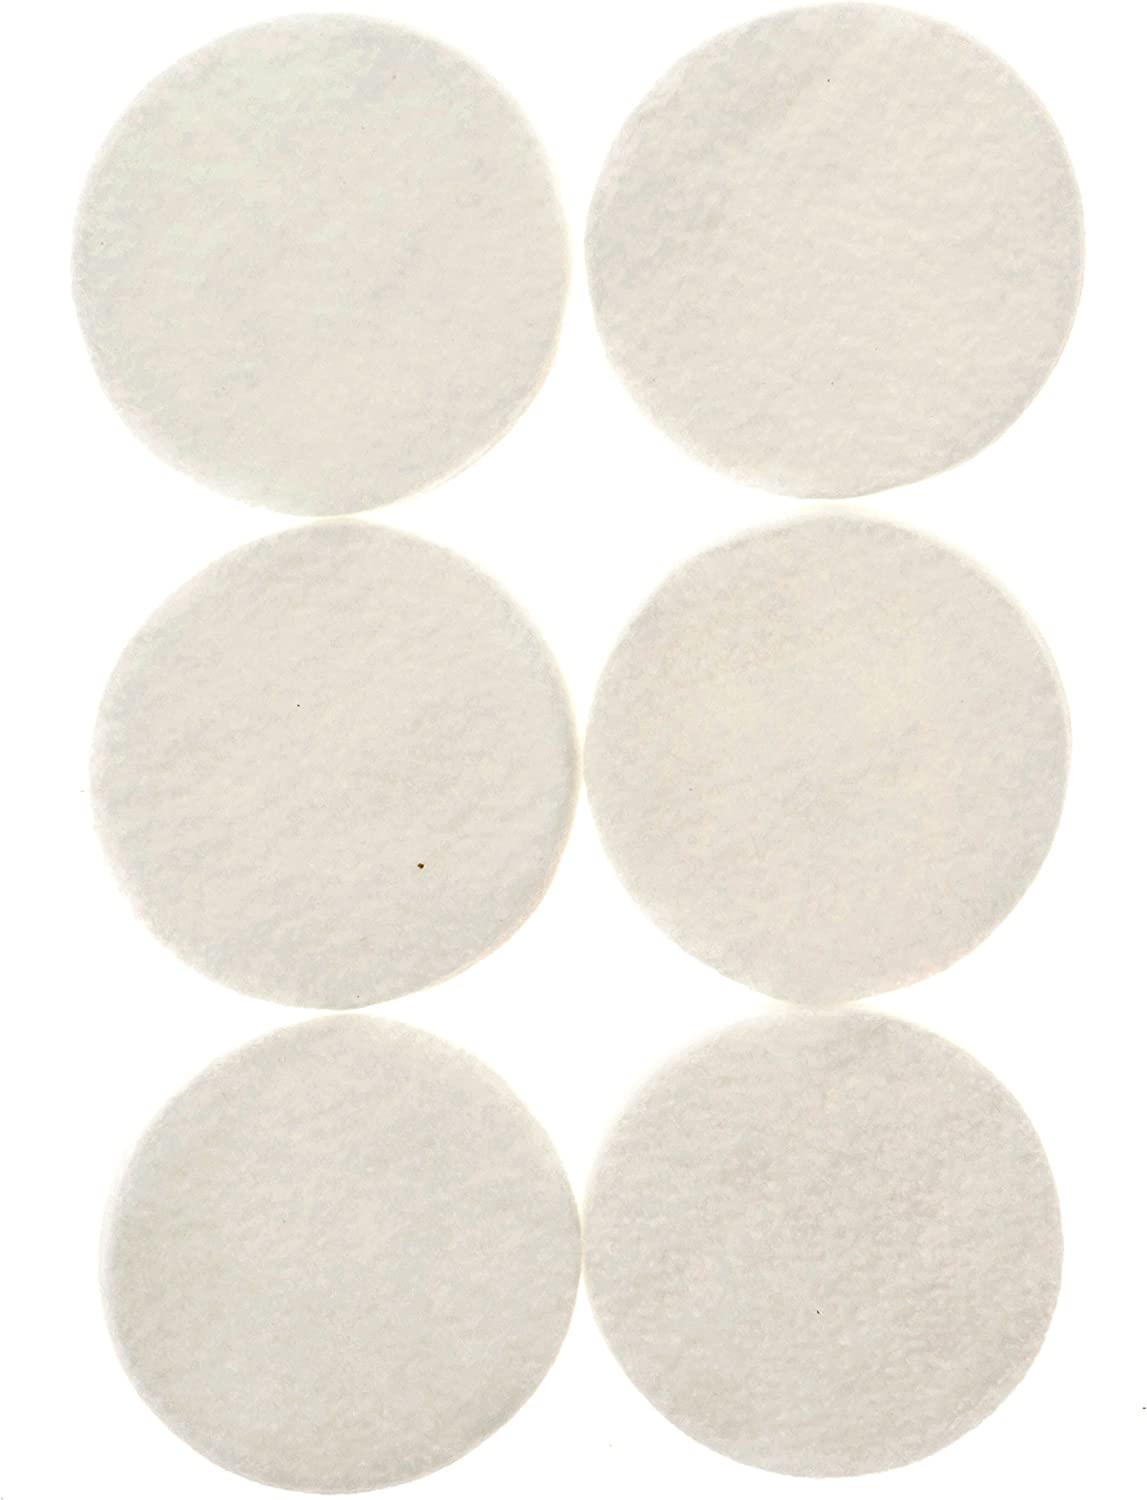 6-Pack von Filtron-Compatible Replacement Filter Pads für die Filtron Cold Brew Coffee Concentrate - durch Impresa Products